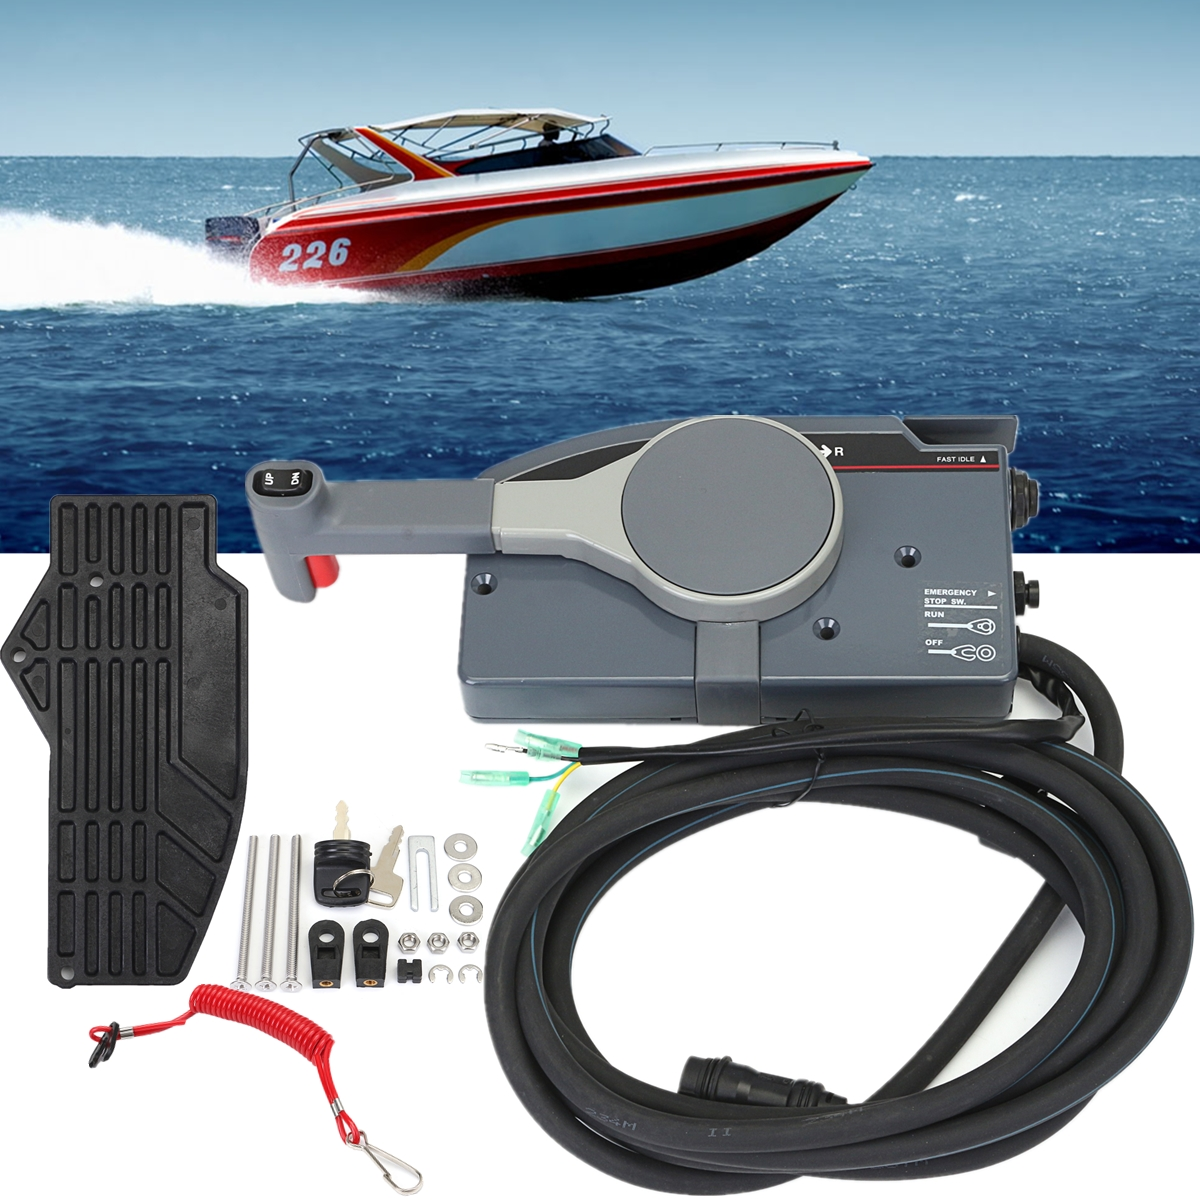 hight resolution of control box includes a key switch stop lanyard and 16 10 pin harness and cable box is push to open match the original yamaha outboard engine